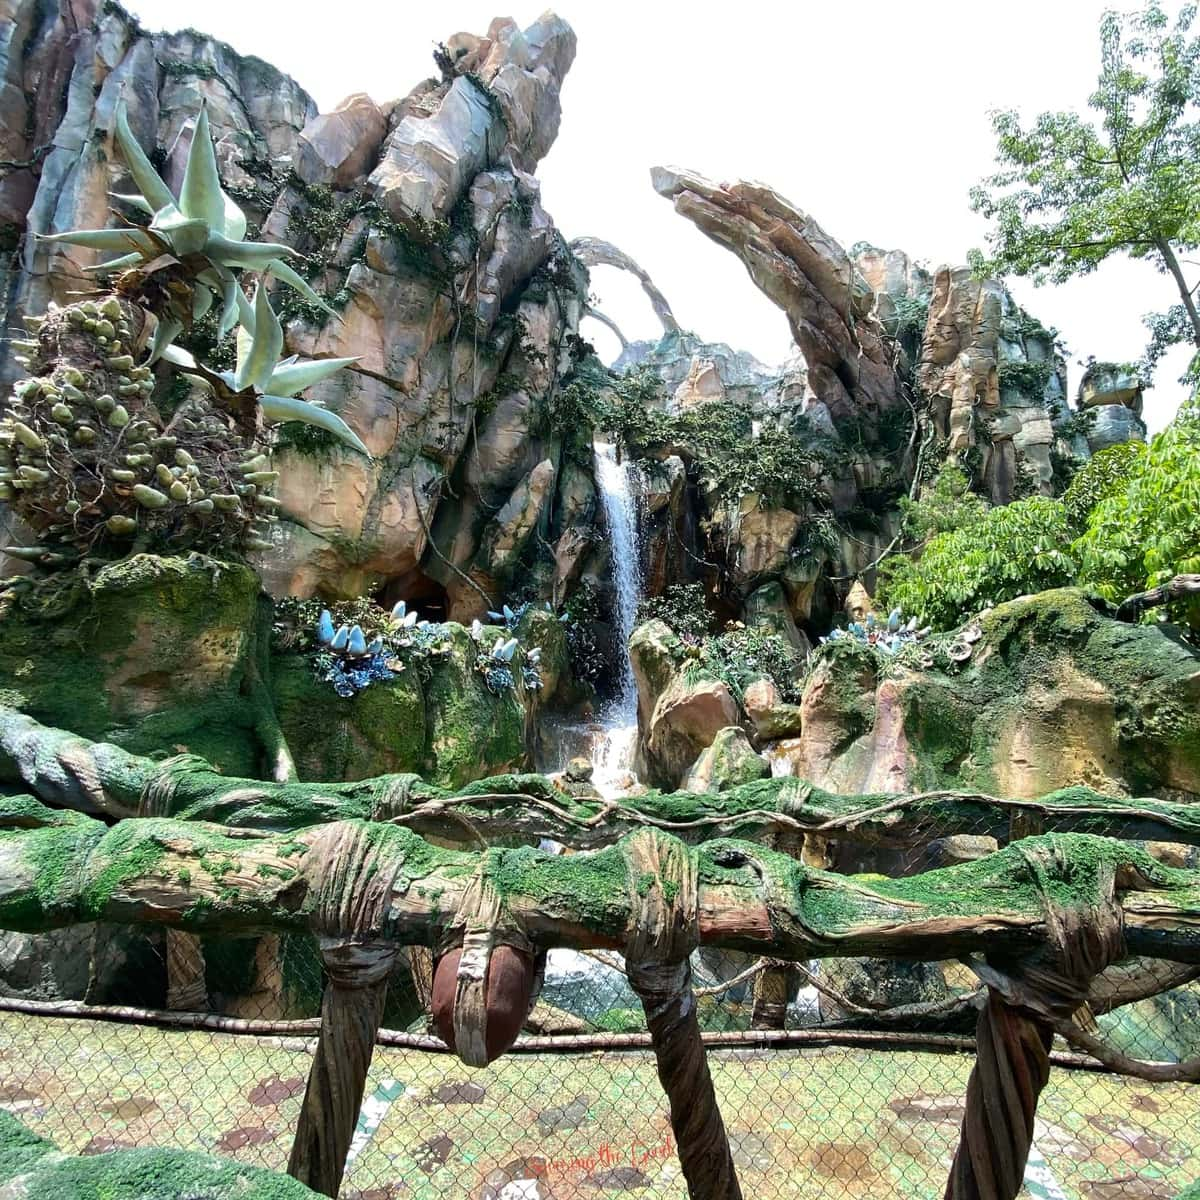 Pandora The World of Avatar waterfall wallpaper background for Microsoft Teams